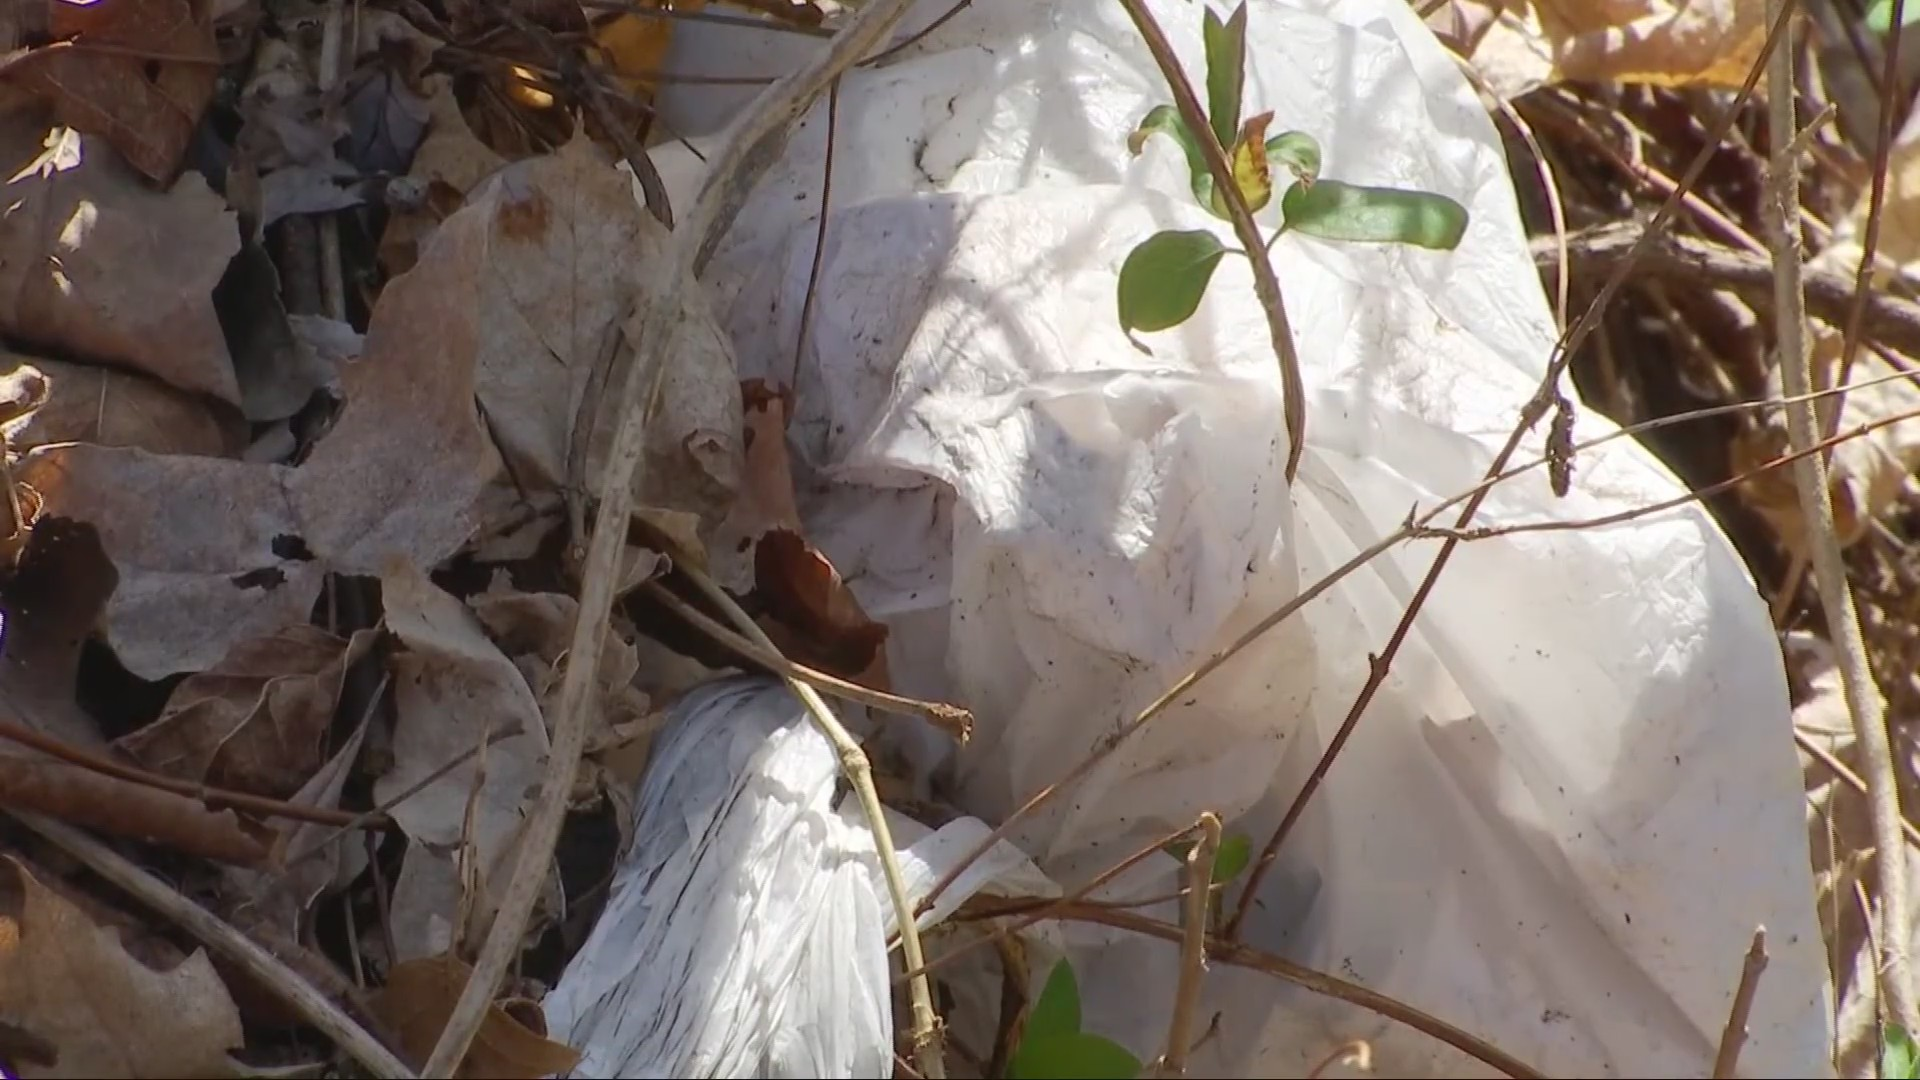 Lawrence County gets tough on illegal dumping